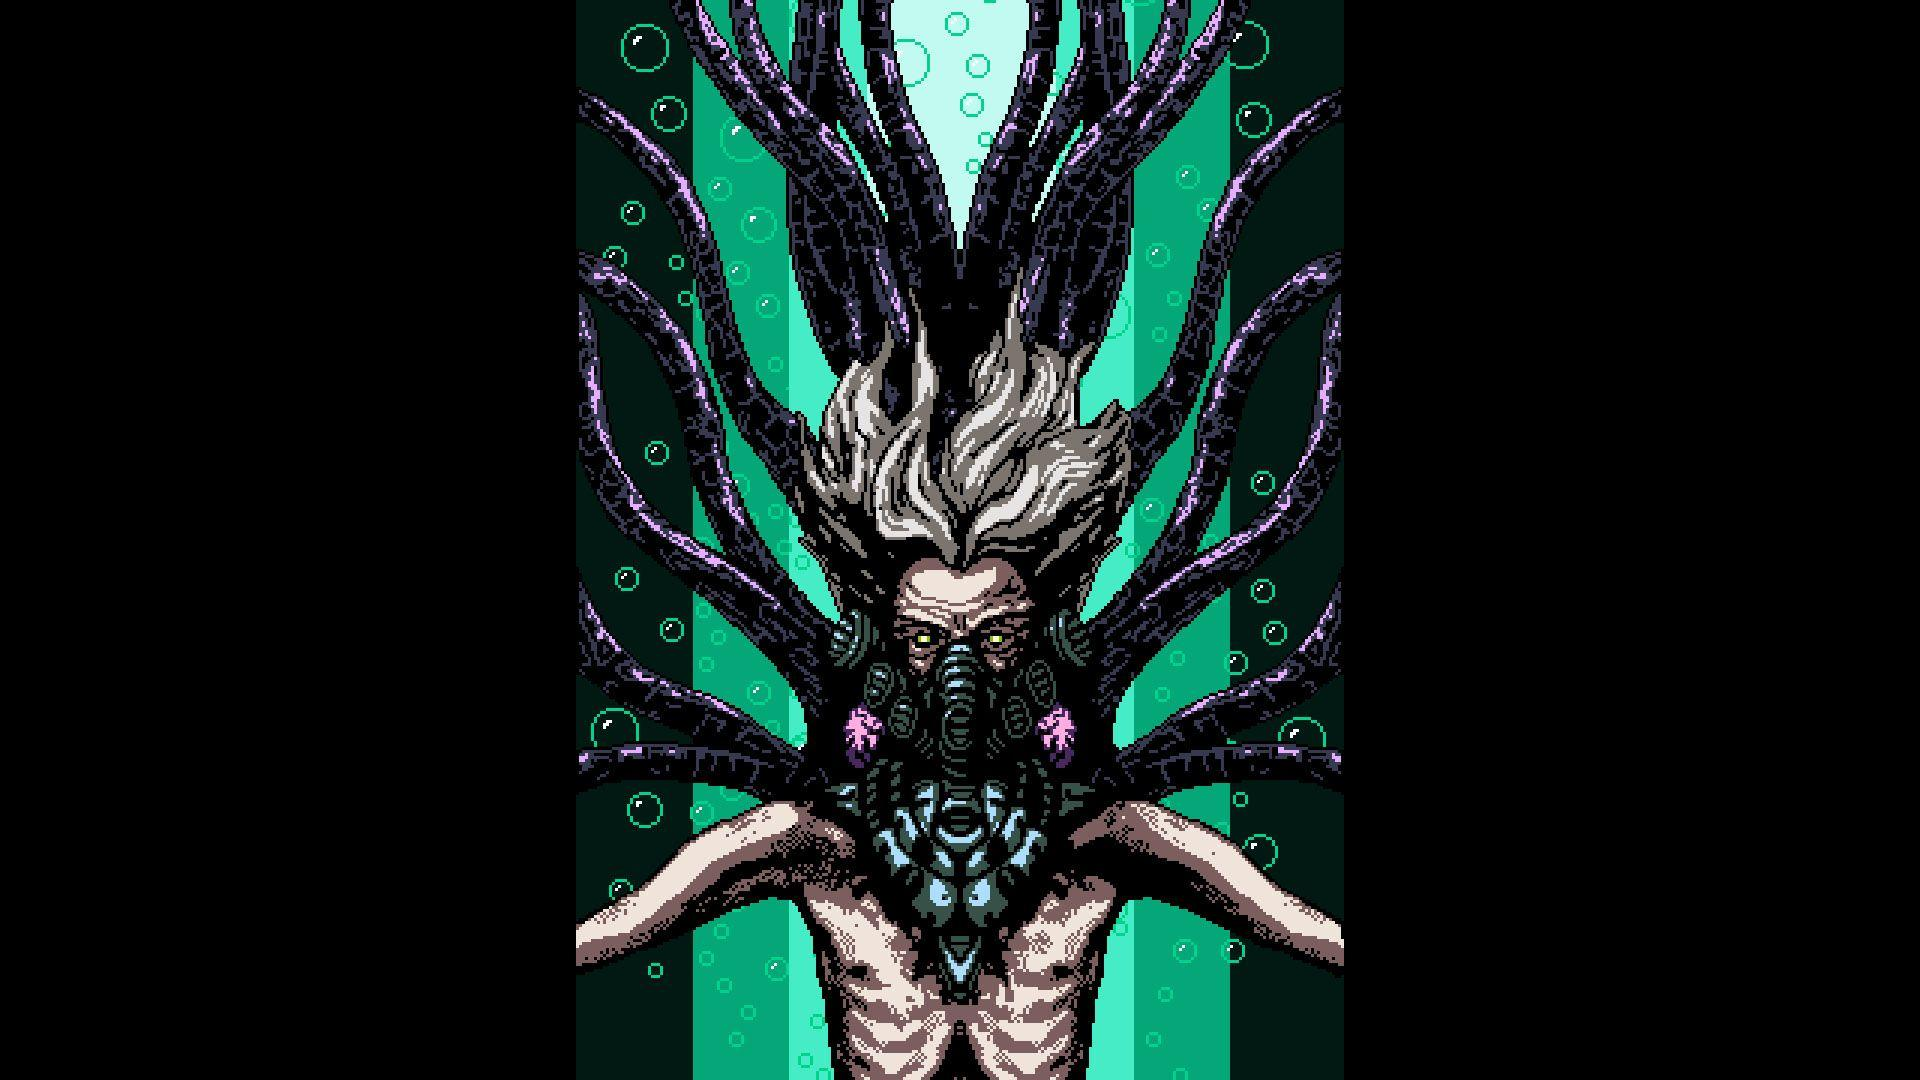 Axiom Verge Wallpapers - Wallpaper Cave